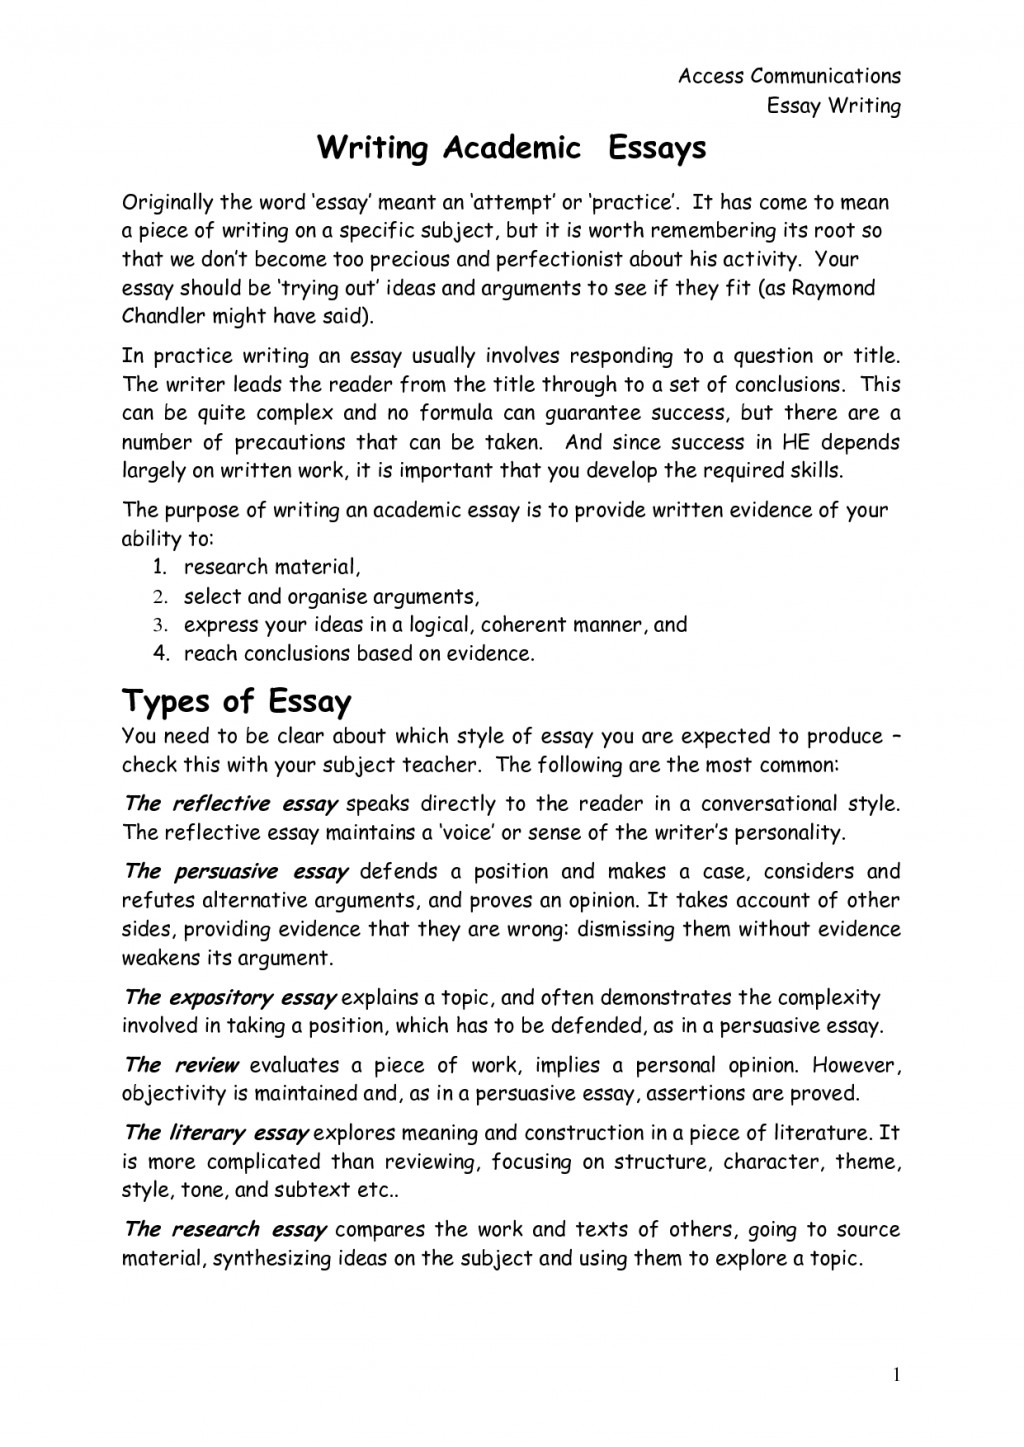 028 Reflective Essay On Academic Writing Unforgettable Example Examples About Life Pdf High School Students Apa Large